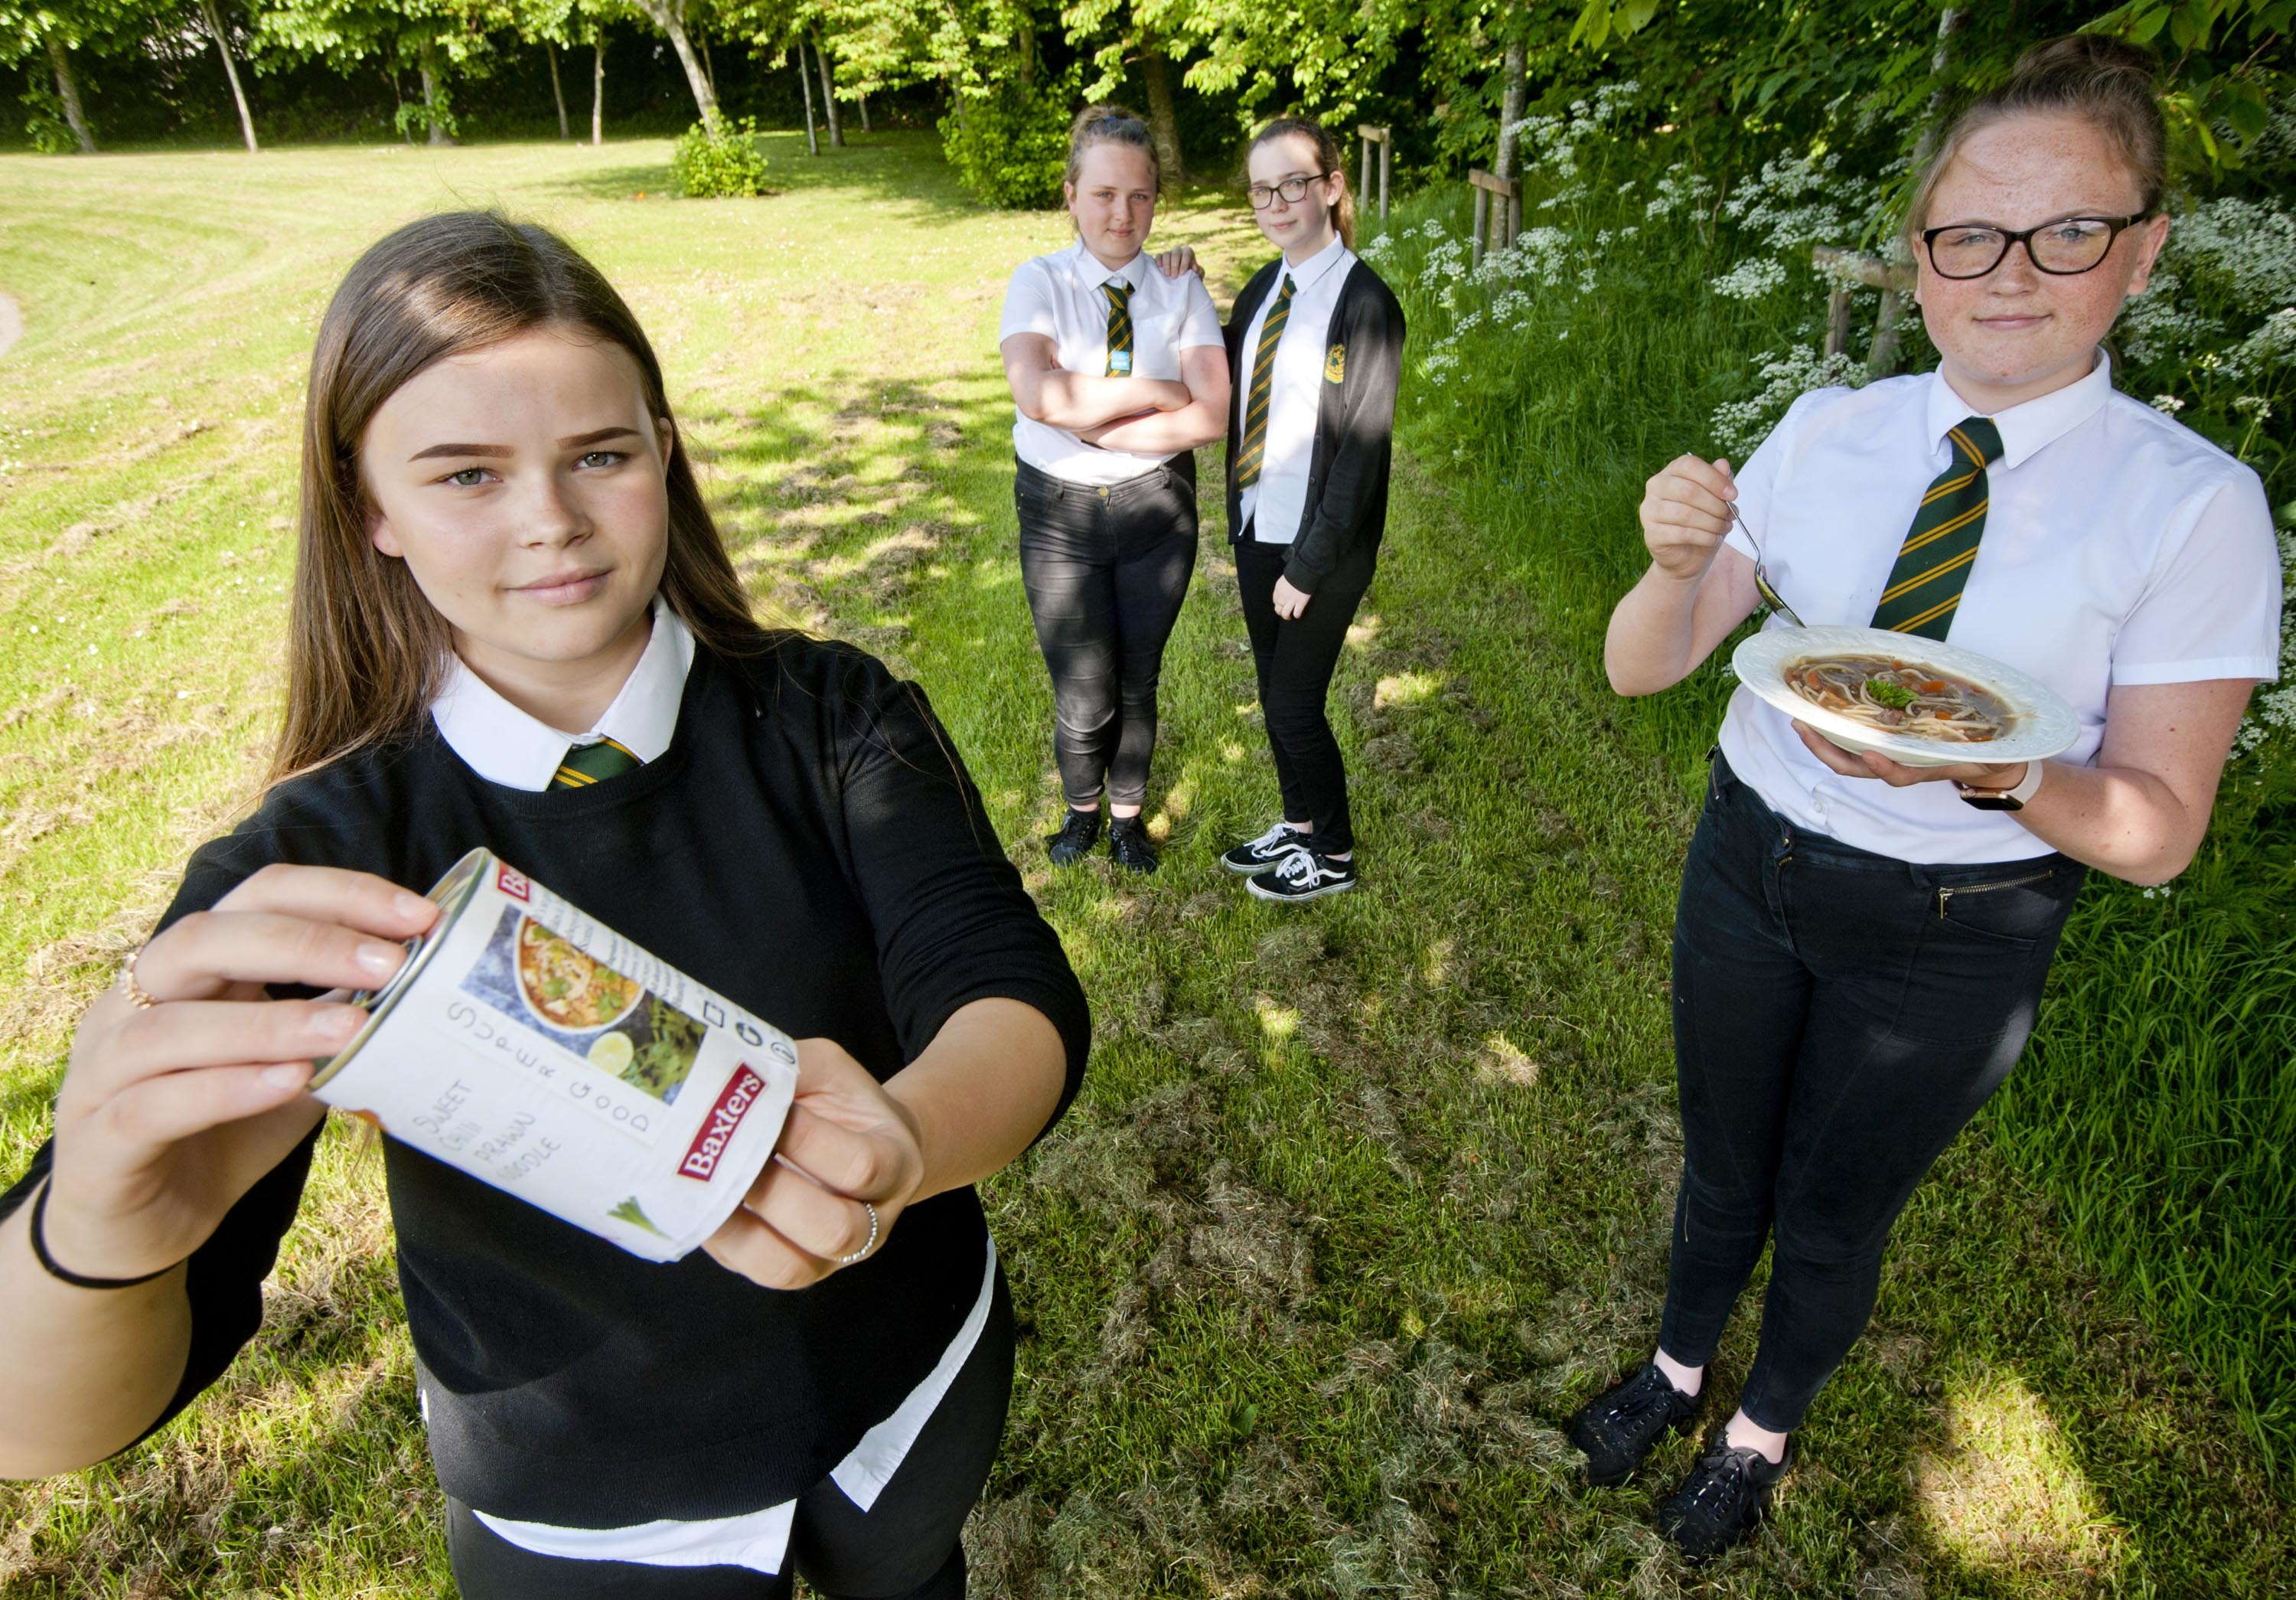 Milne's High School, students were tasked to create recipes for Baxters. Pictured: Freya Hughson 14, Emma Morrison 14, Dionne Campbell 13 and Megan Keddie 14.